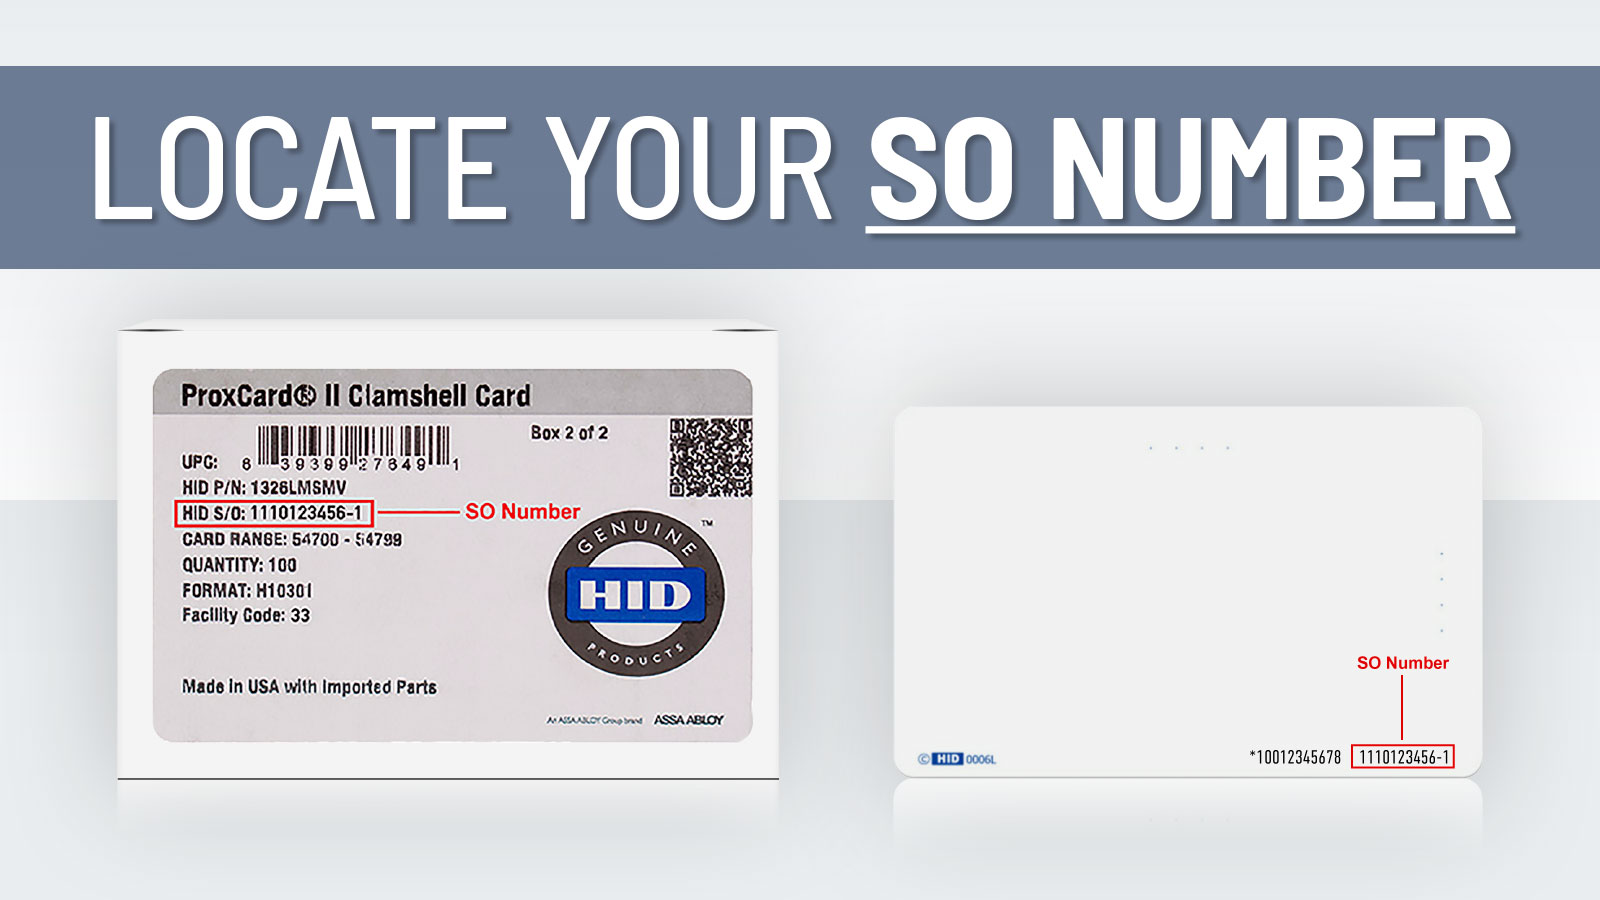 HID Access Cards - Locate Your SO Number